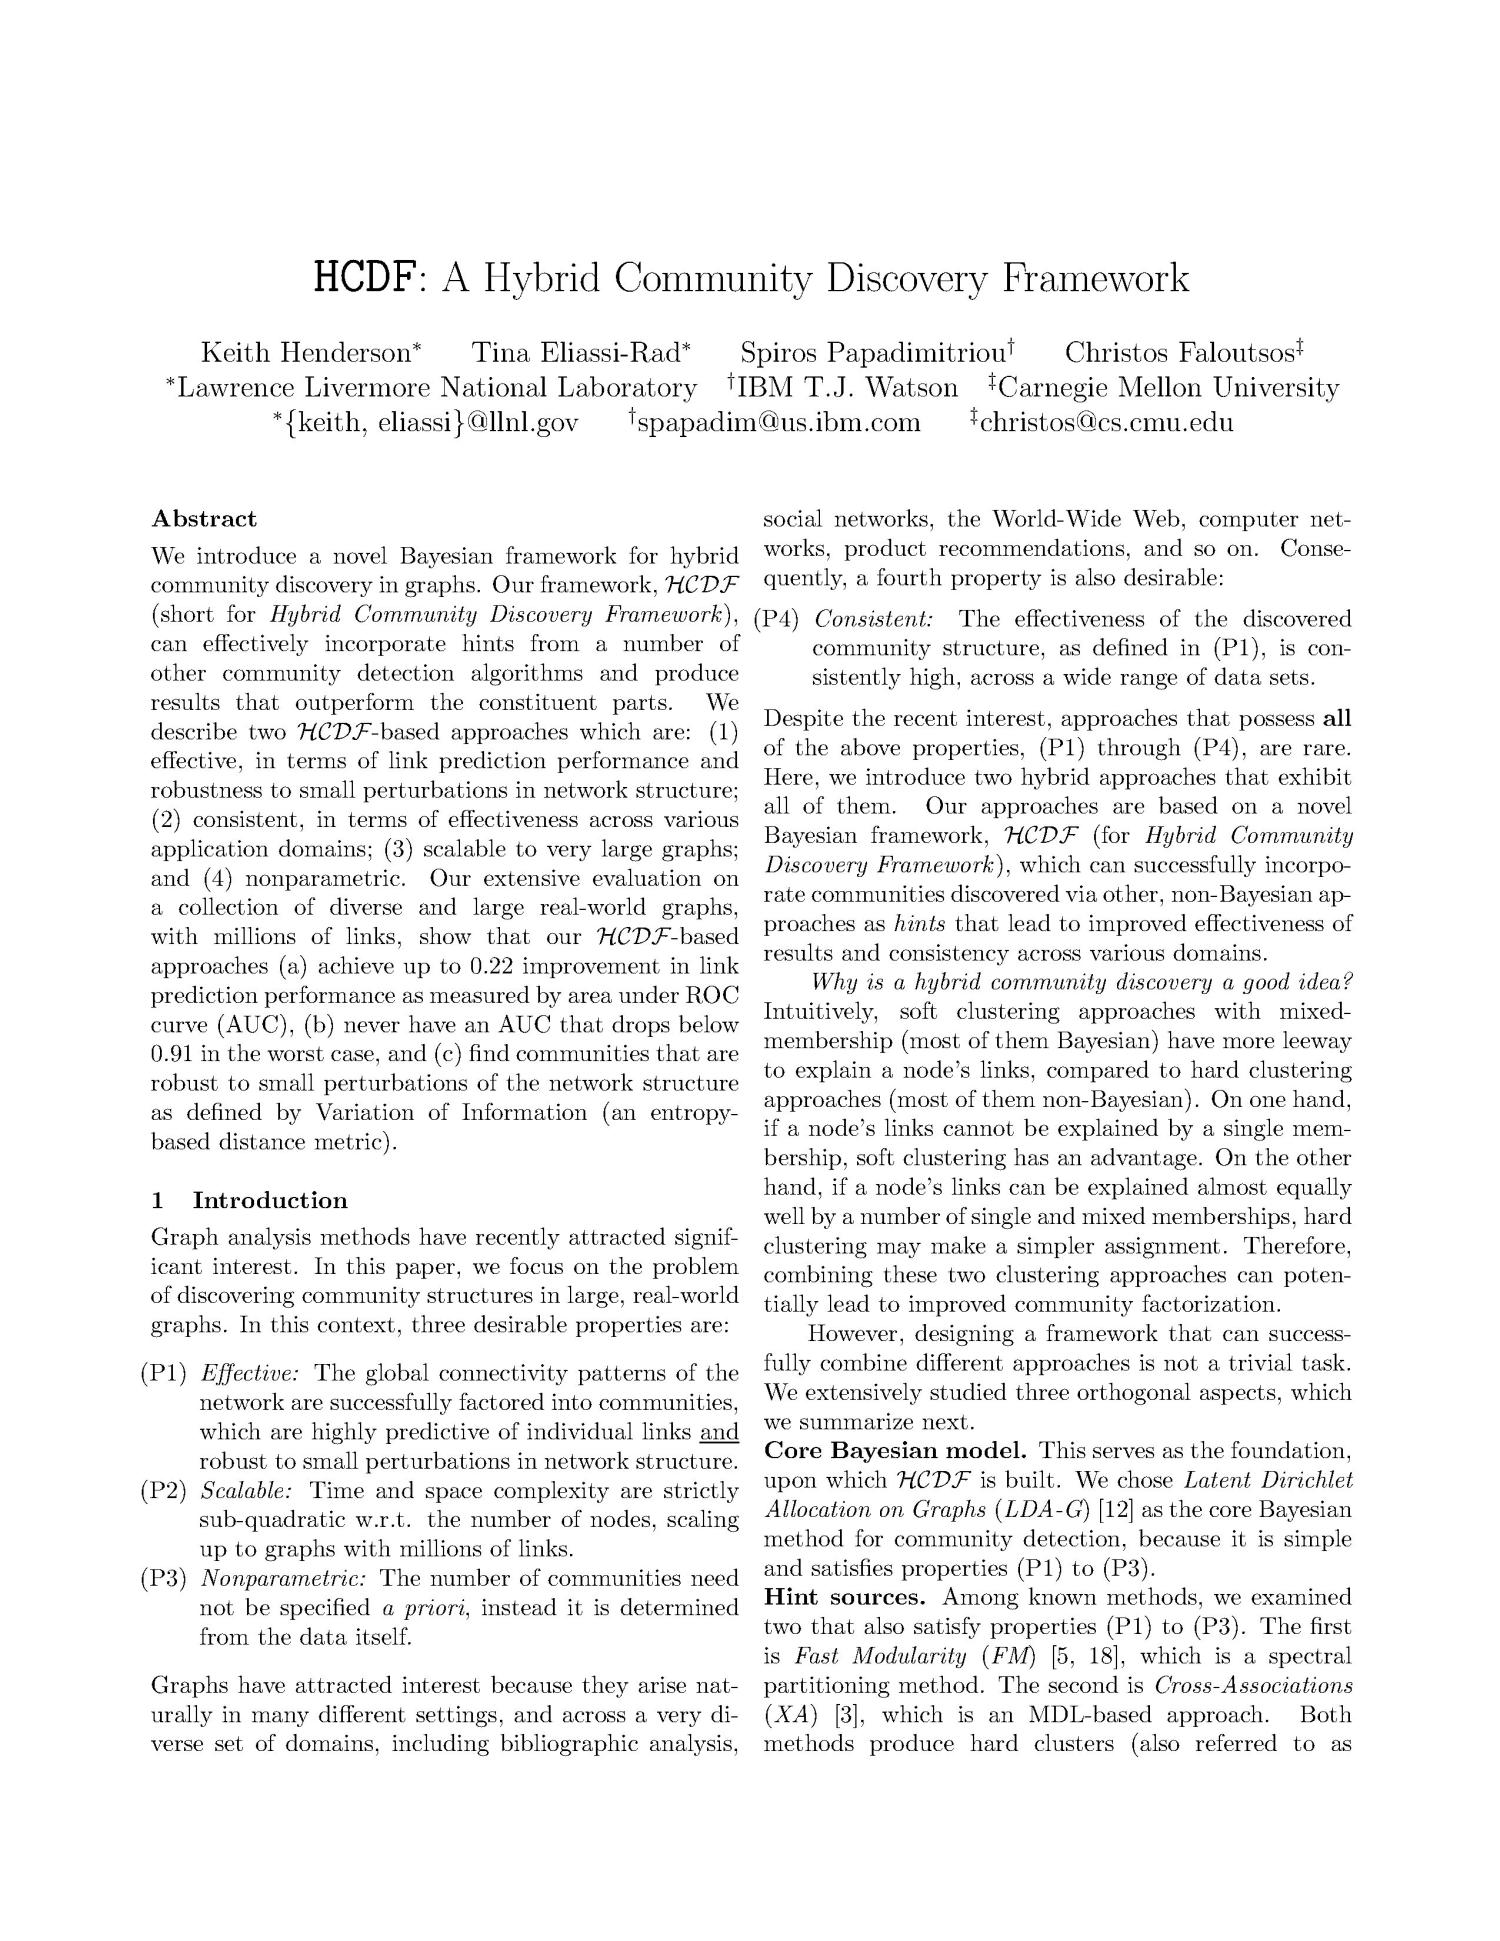 HCDF: A Hybrid Community Discovery Framework                                                                                                      [Sequence #]: 3 of 14